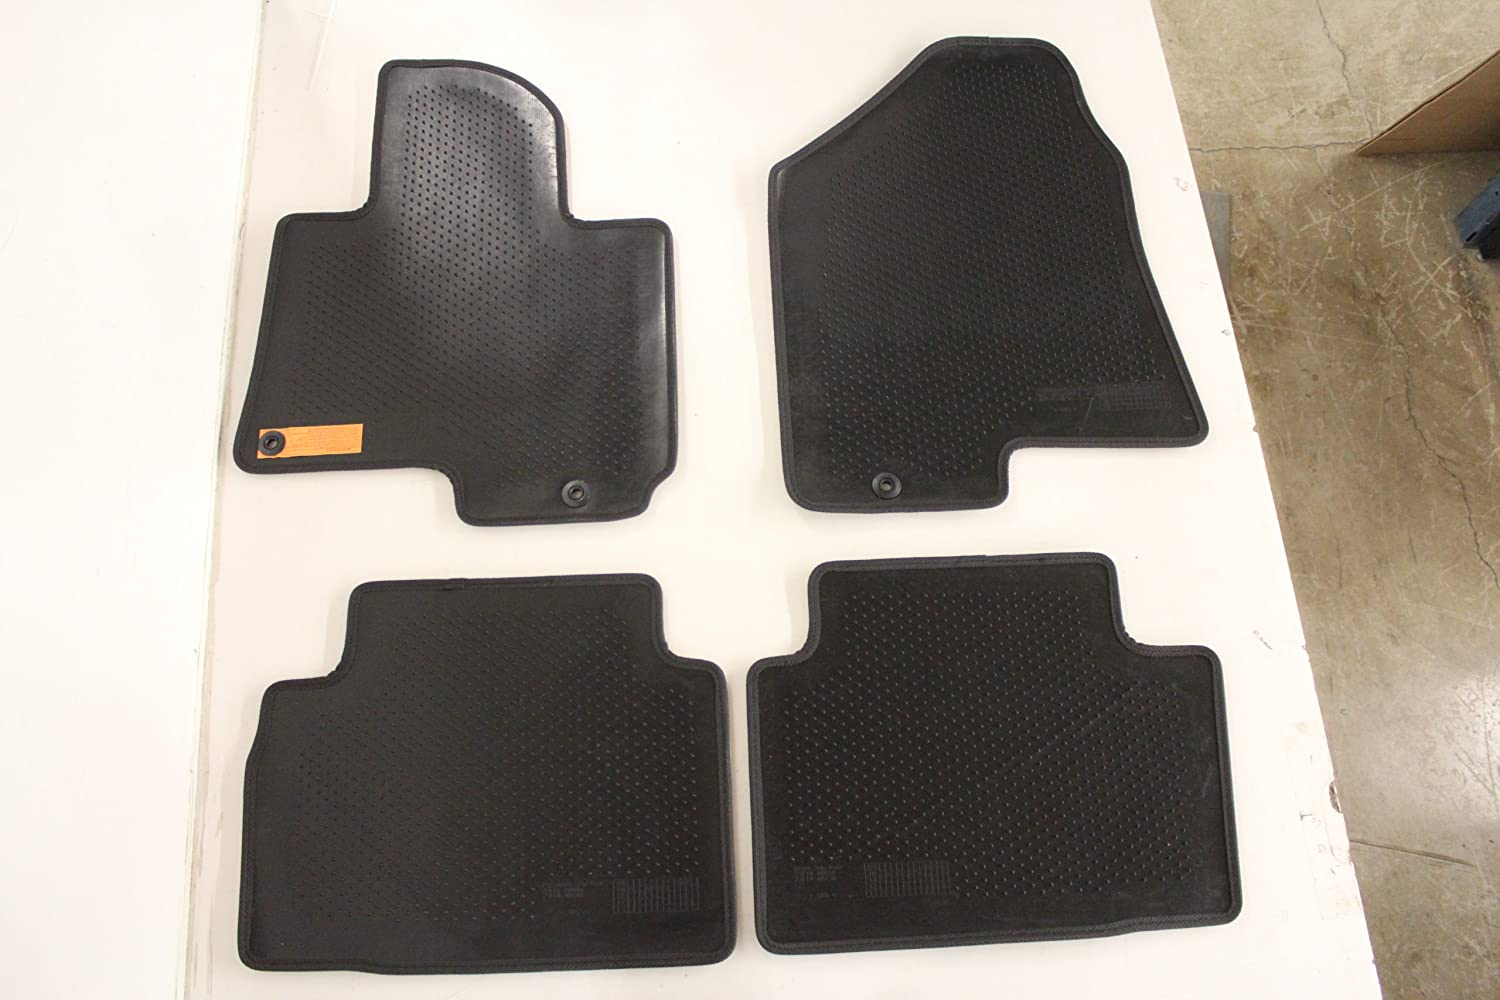 Genuine Hyundai Accessories 2SF14-AB0009P Black Front and Rear Carpet Floor Mat for Hyundai Tucson